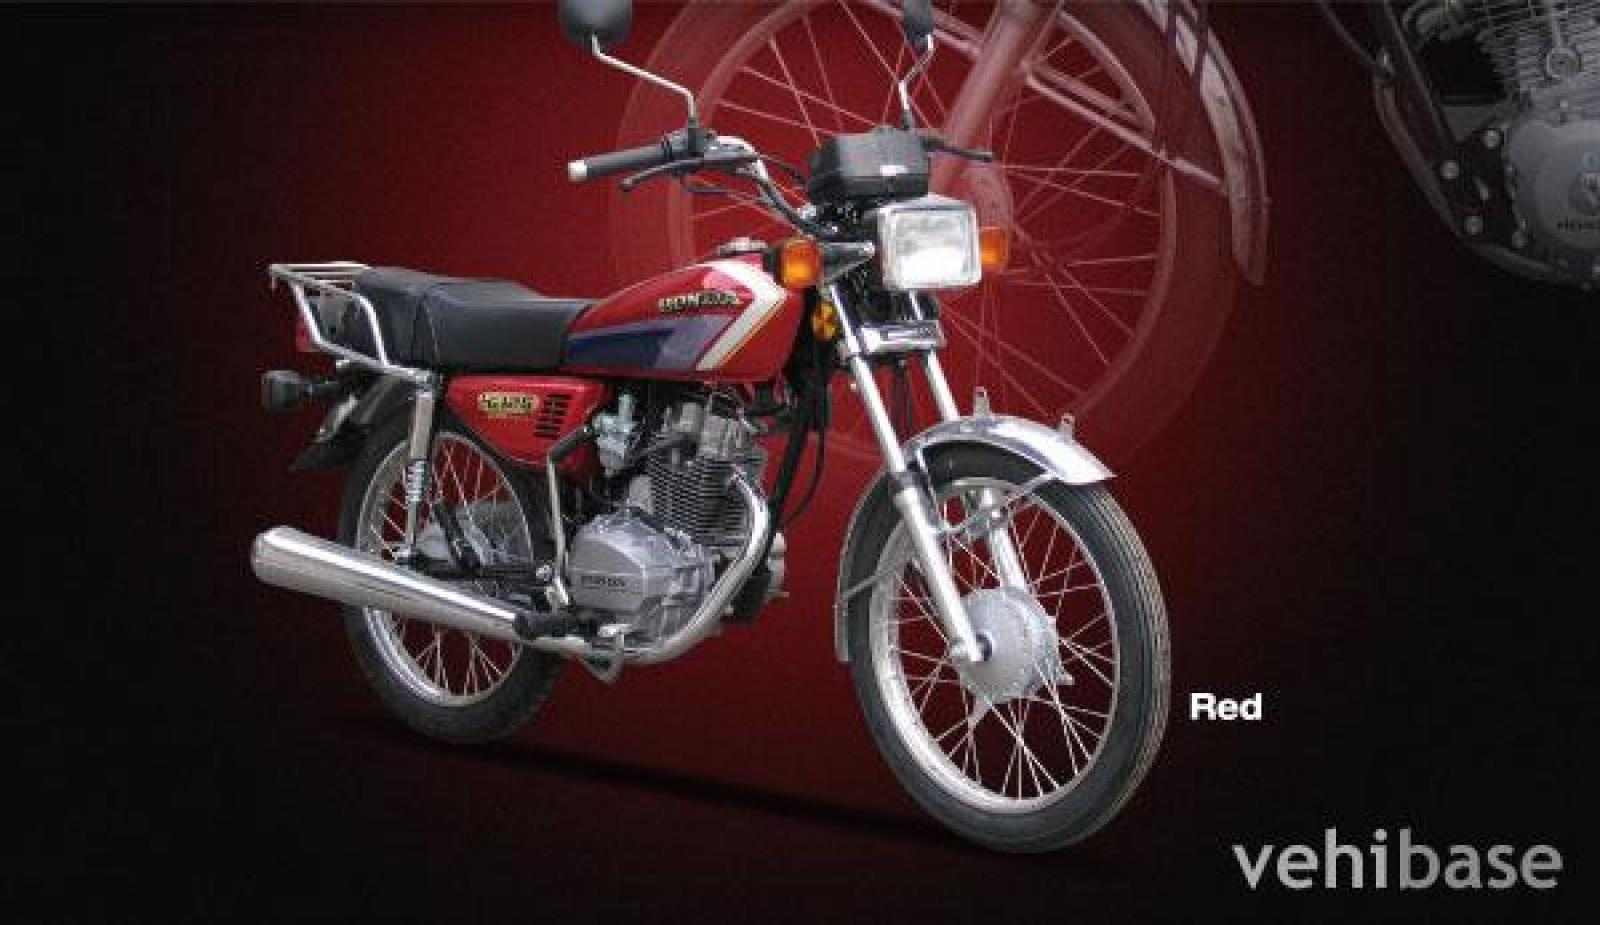 Atlas Honda CG 125 - Millenium Power 2000 images #93426